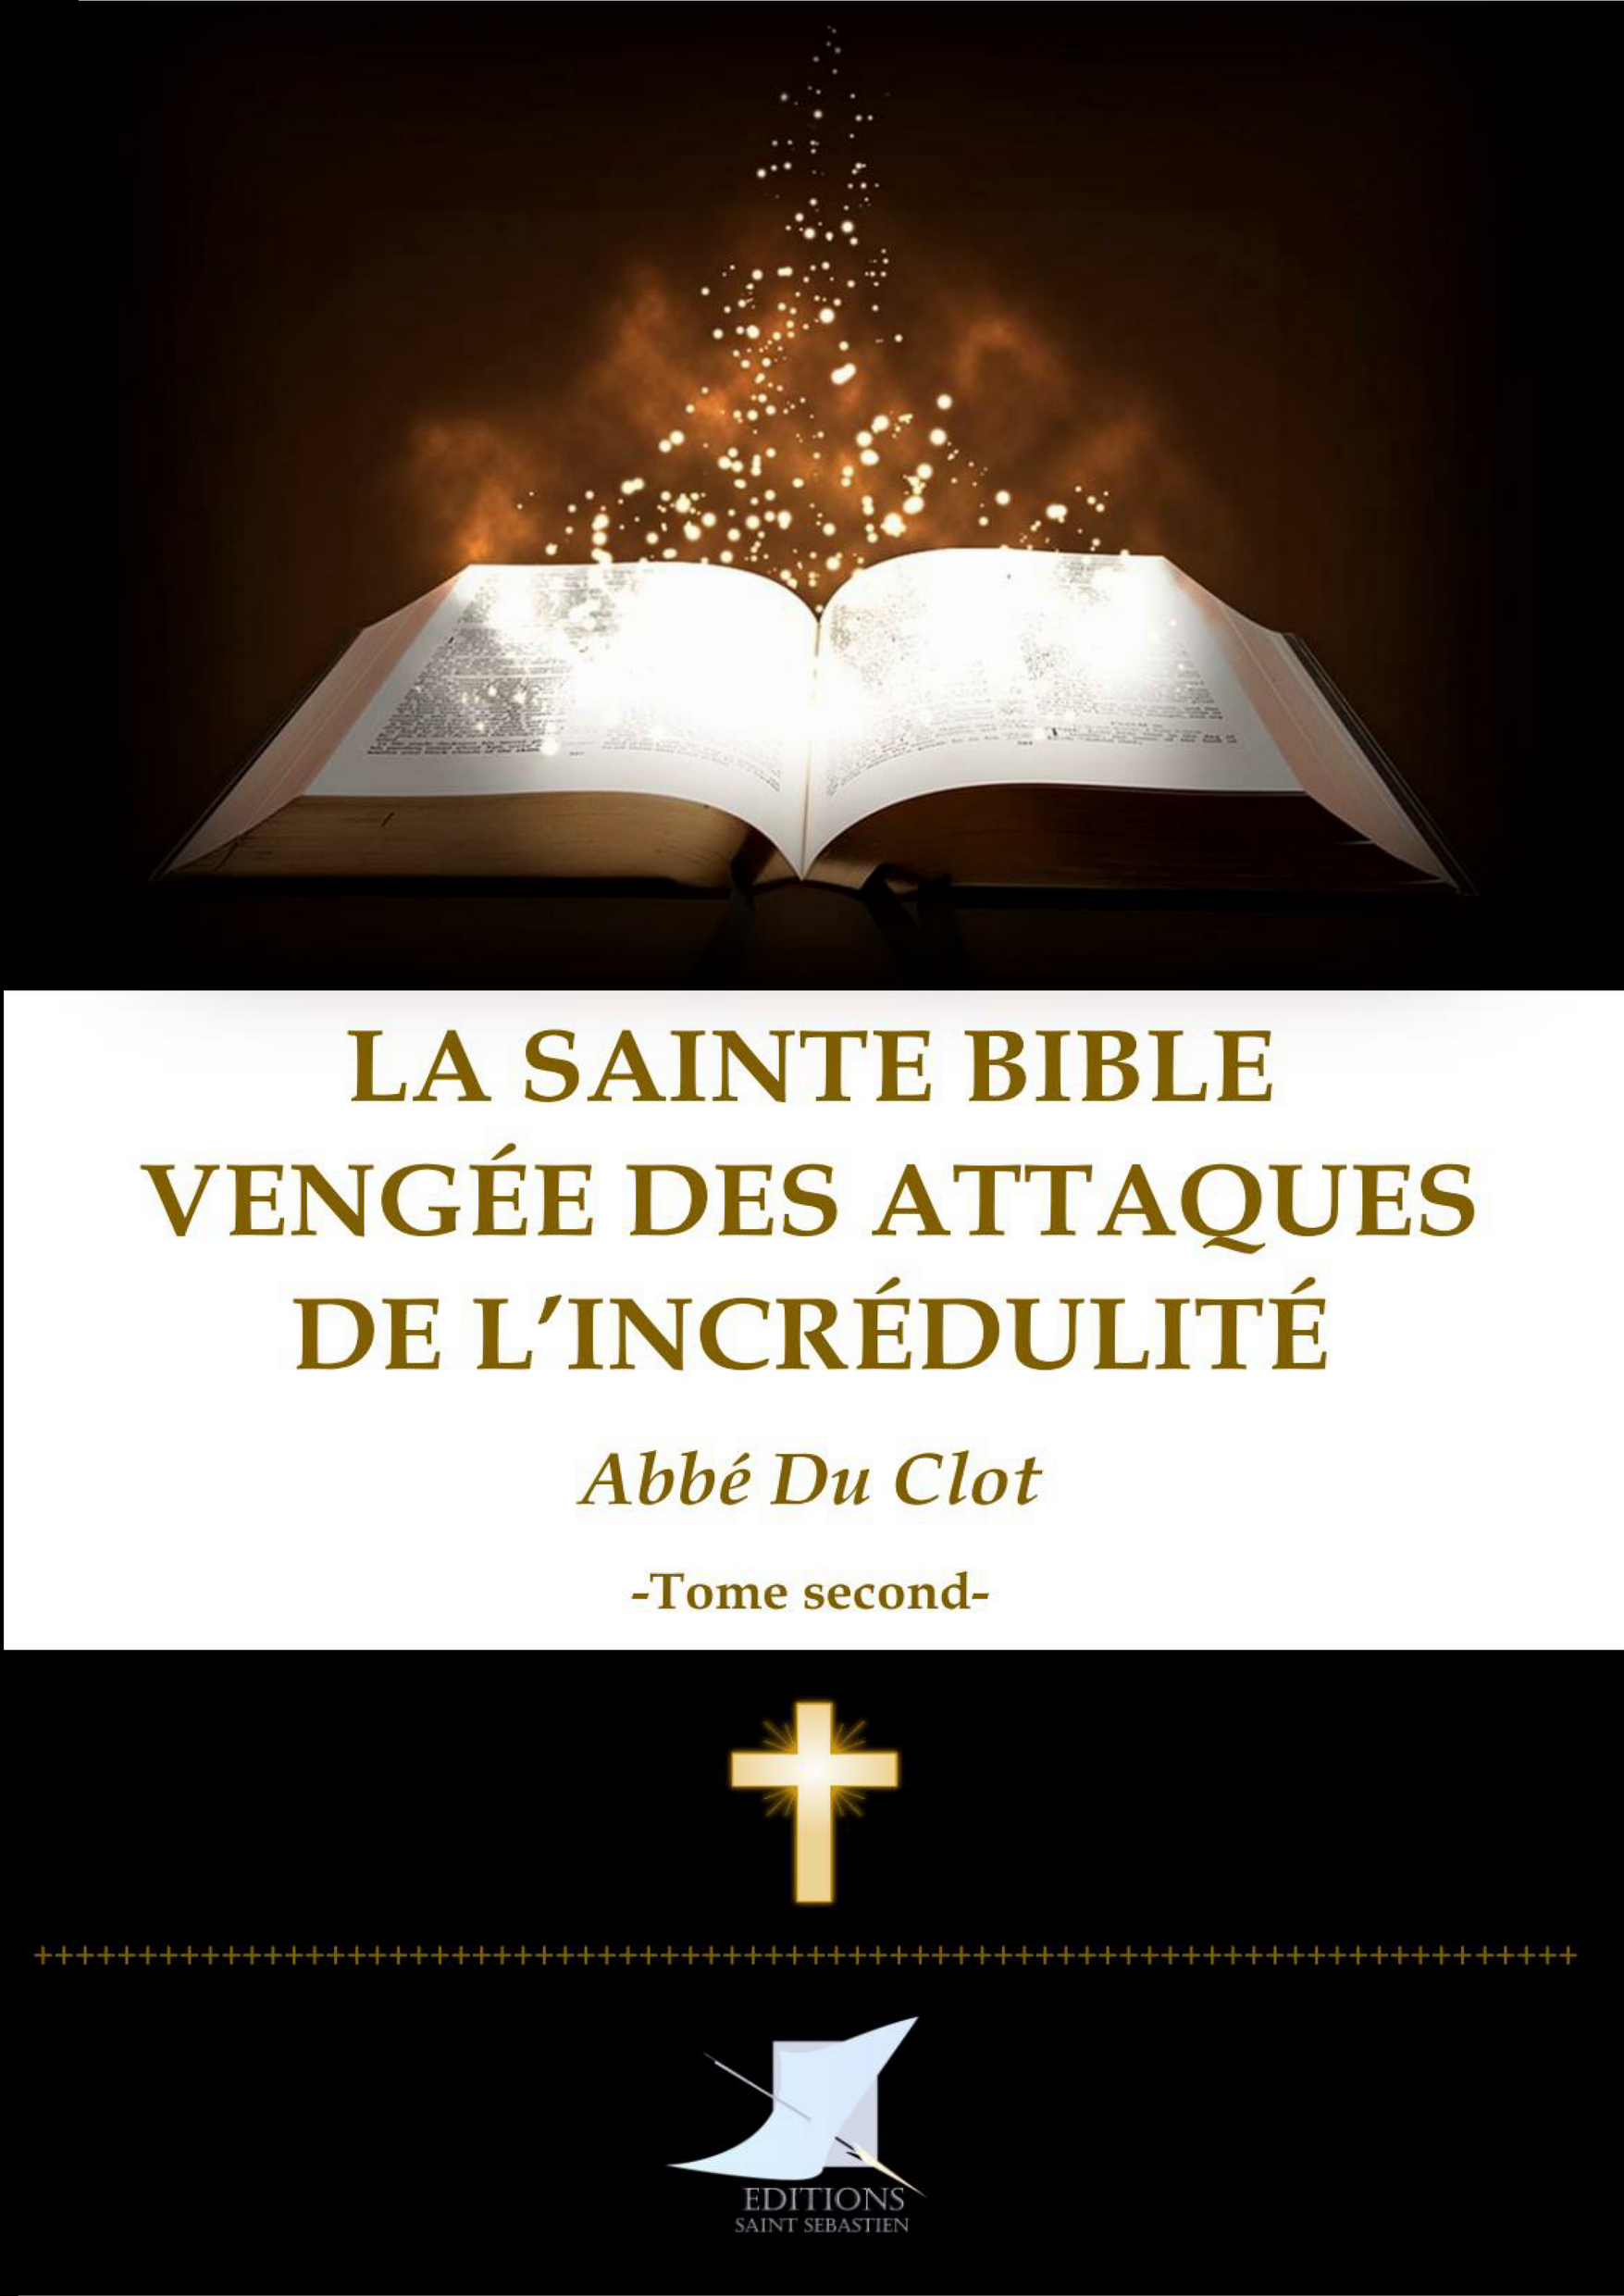 La Sainte Bible vengée (Tome second)